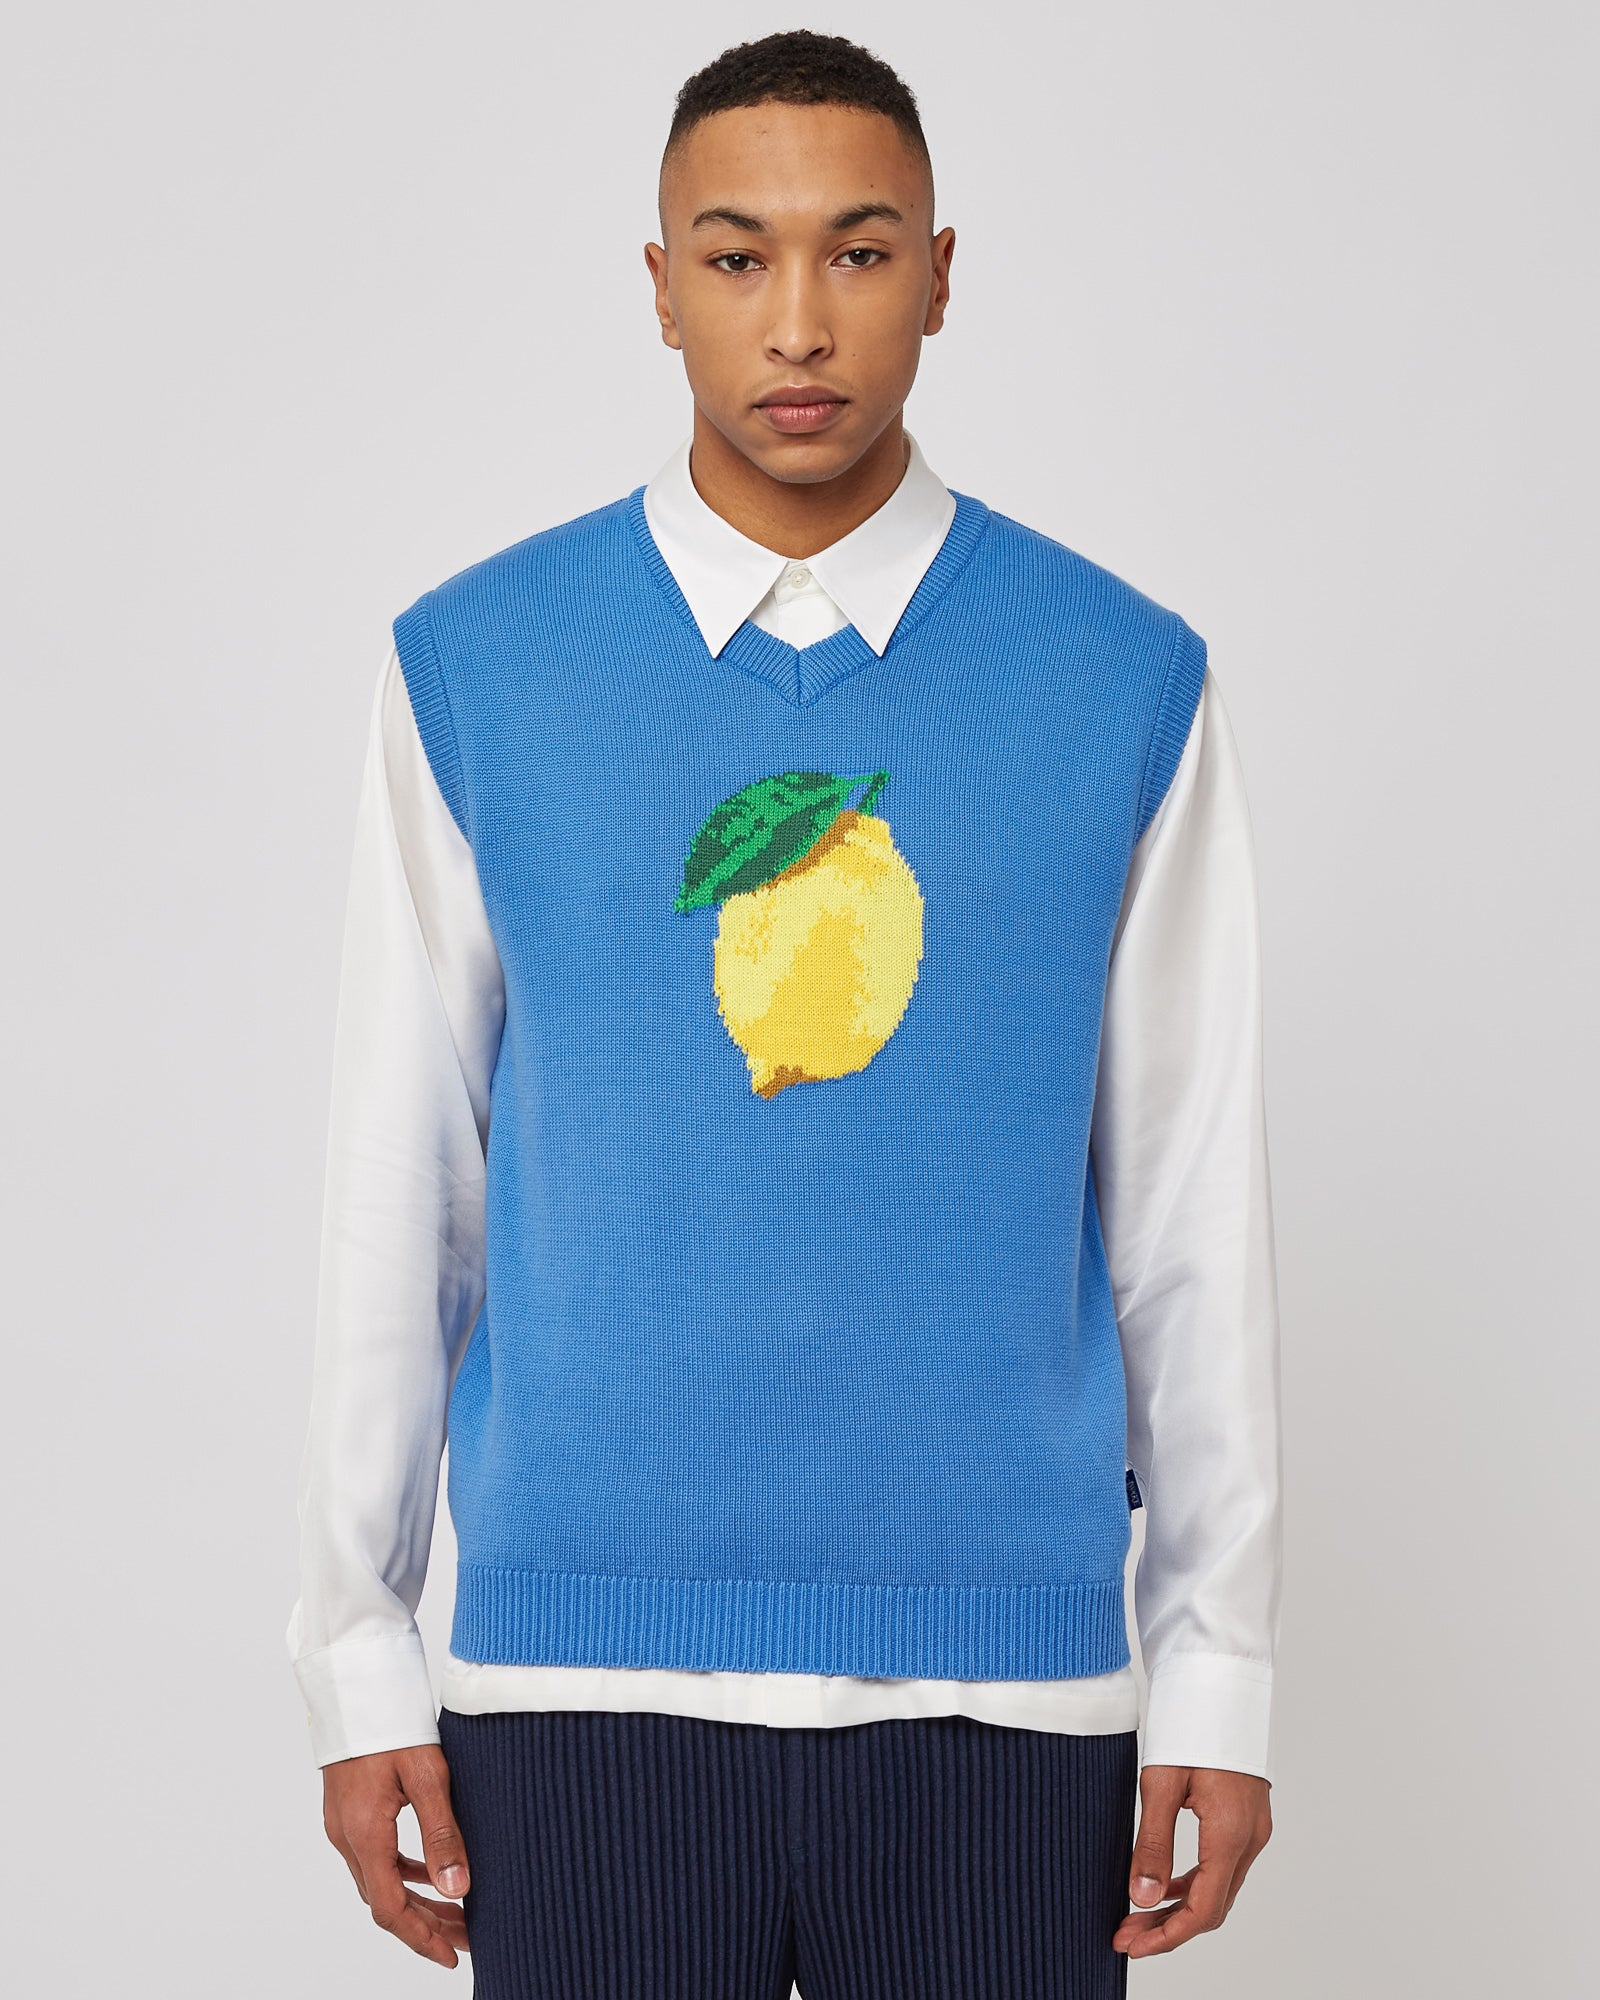 Lemon Vest in Azure